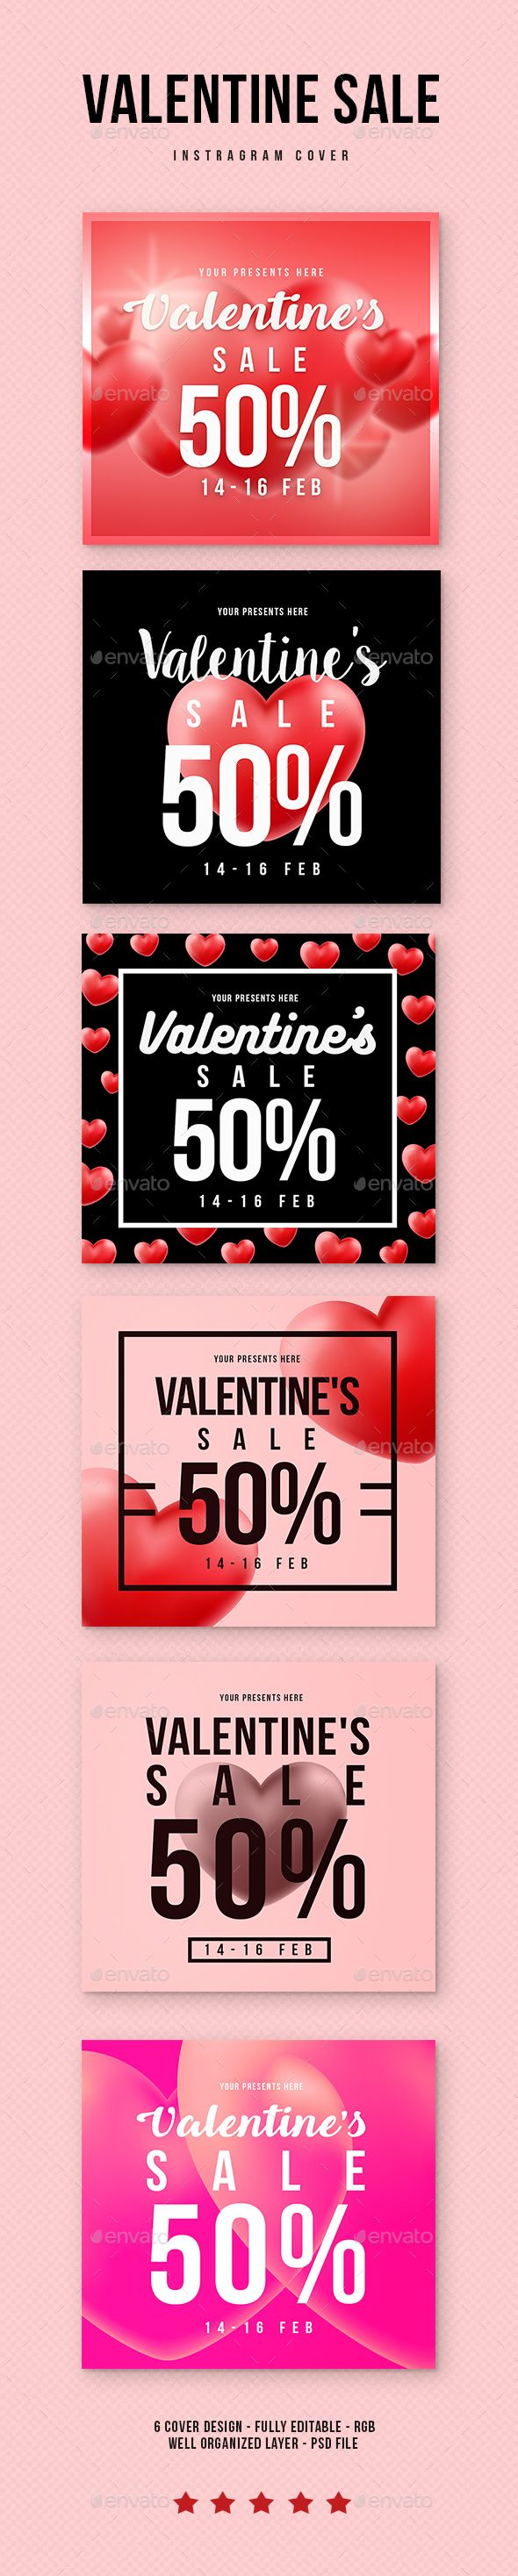 Valentine Sale Instragram Banners Template PSD